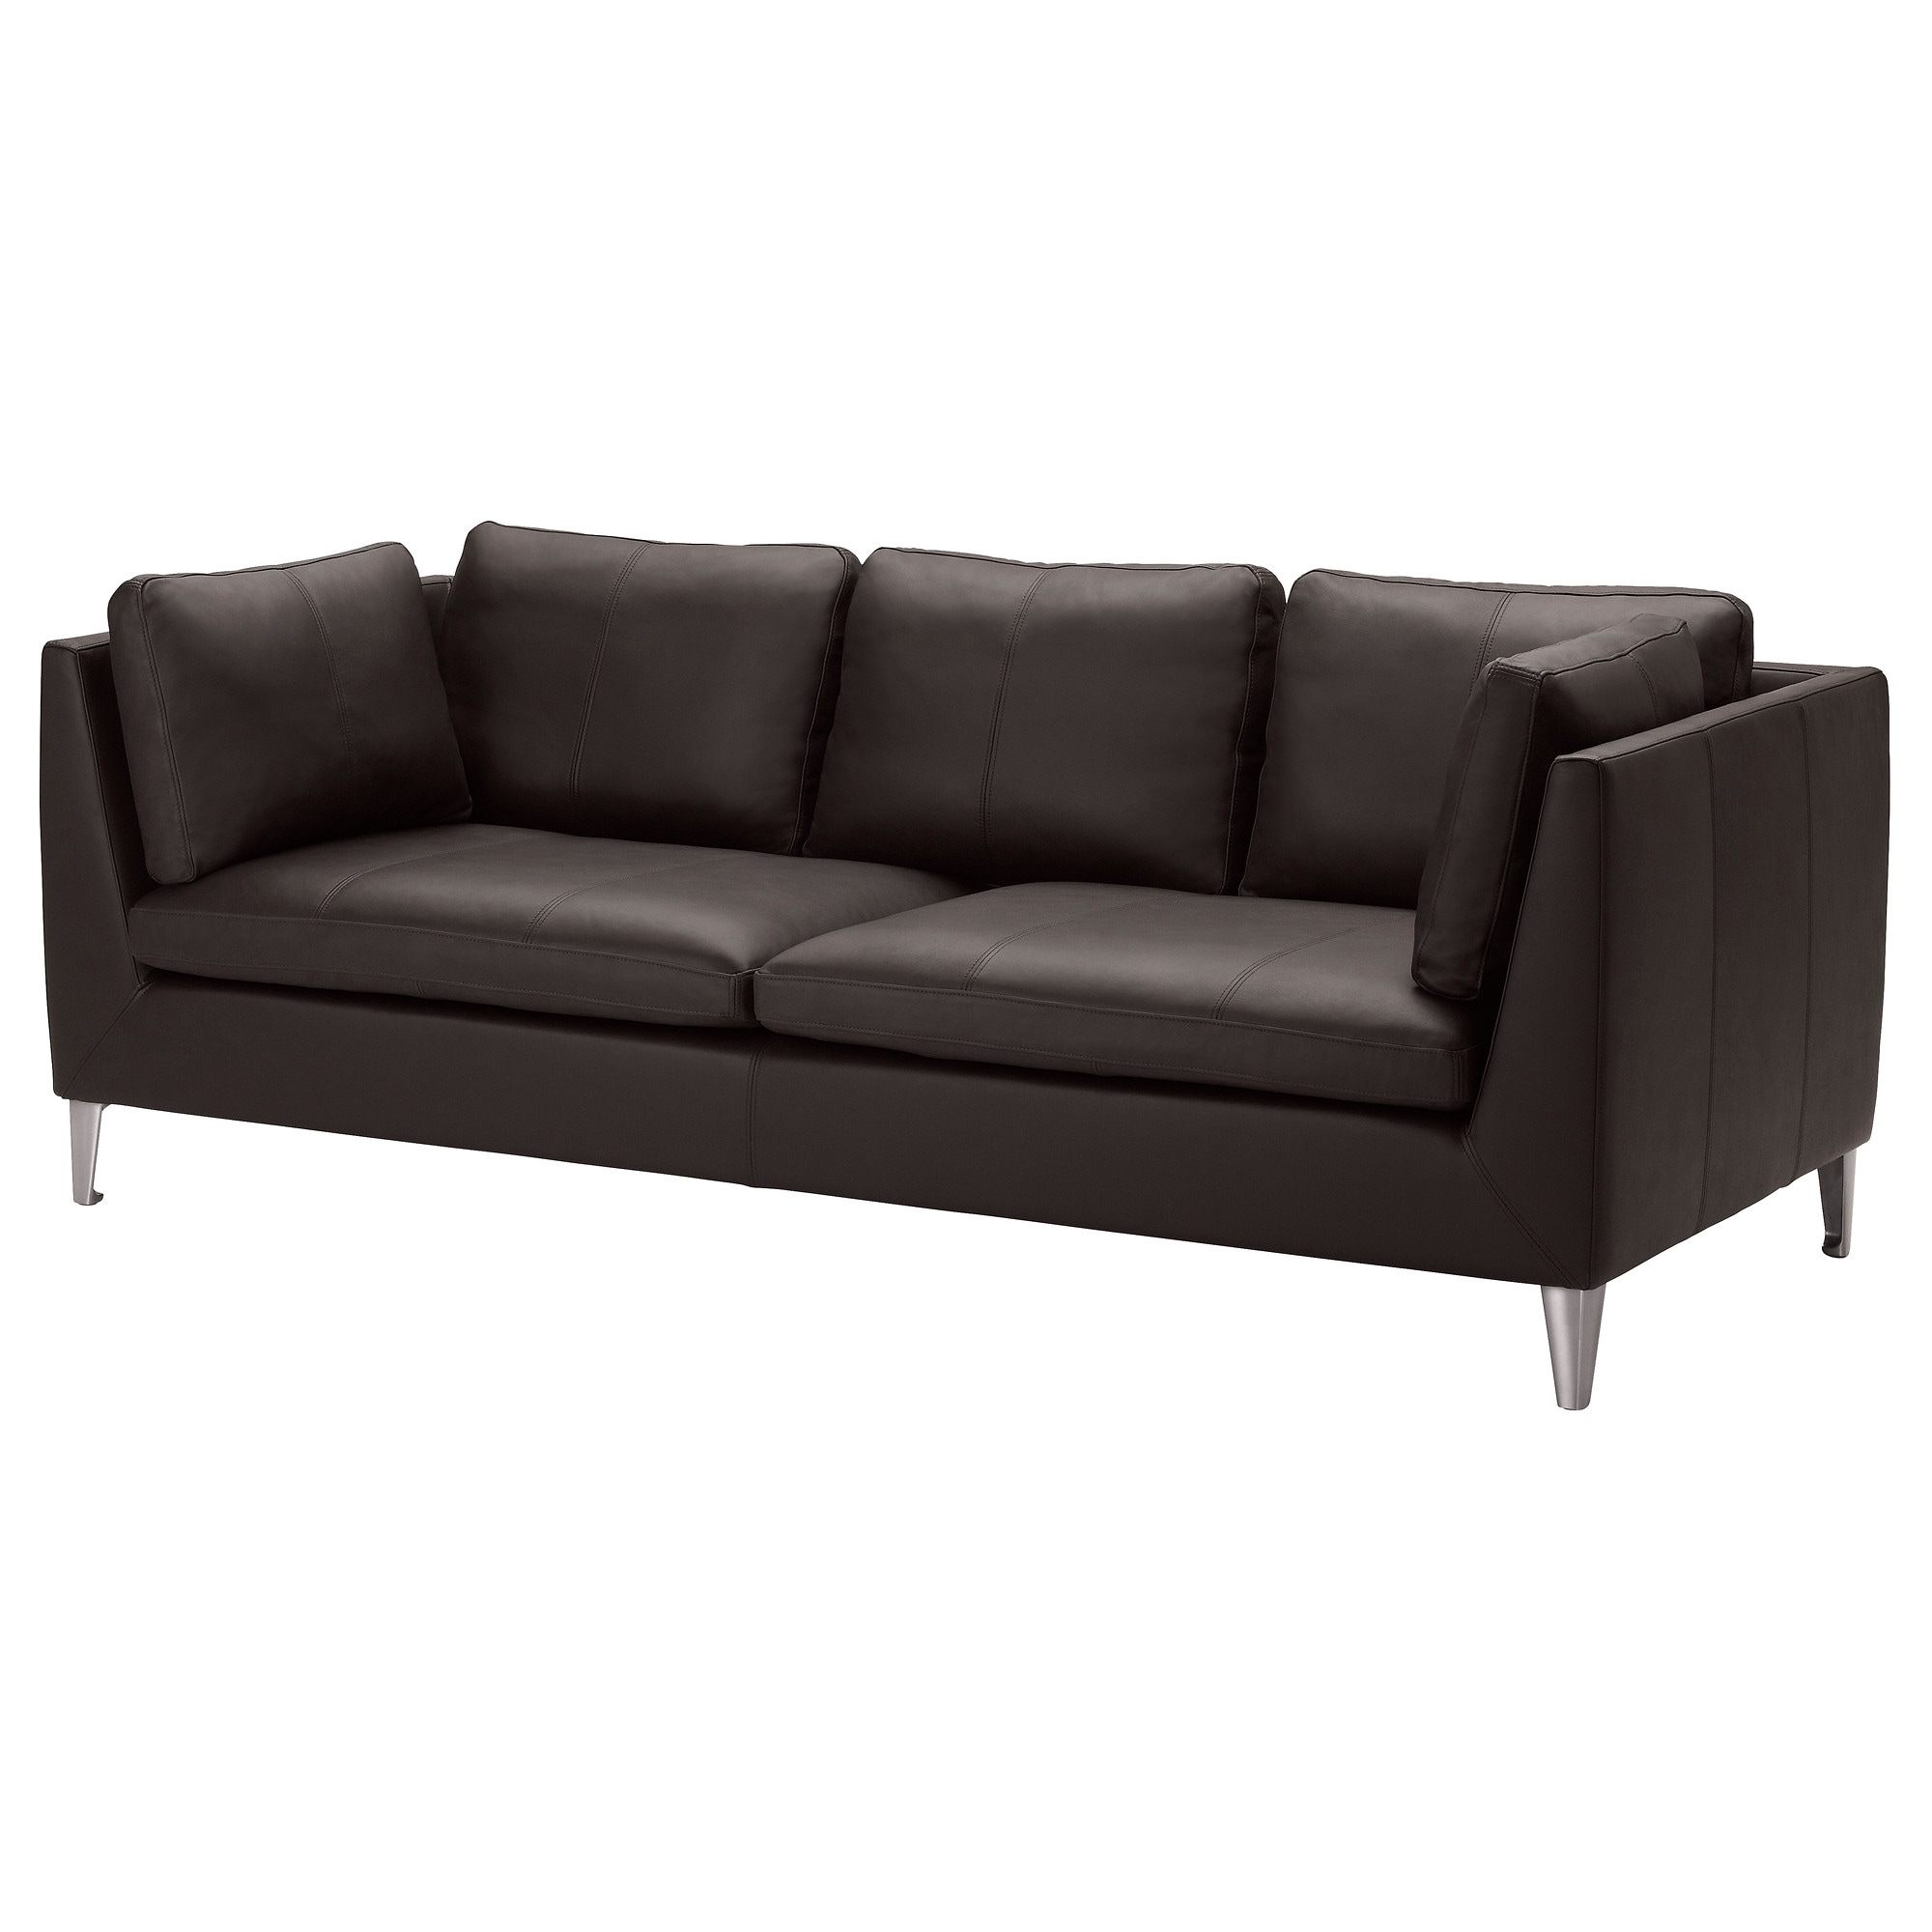 STOCKHOLM Sofa Seglora dark brown IKEA